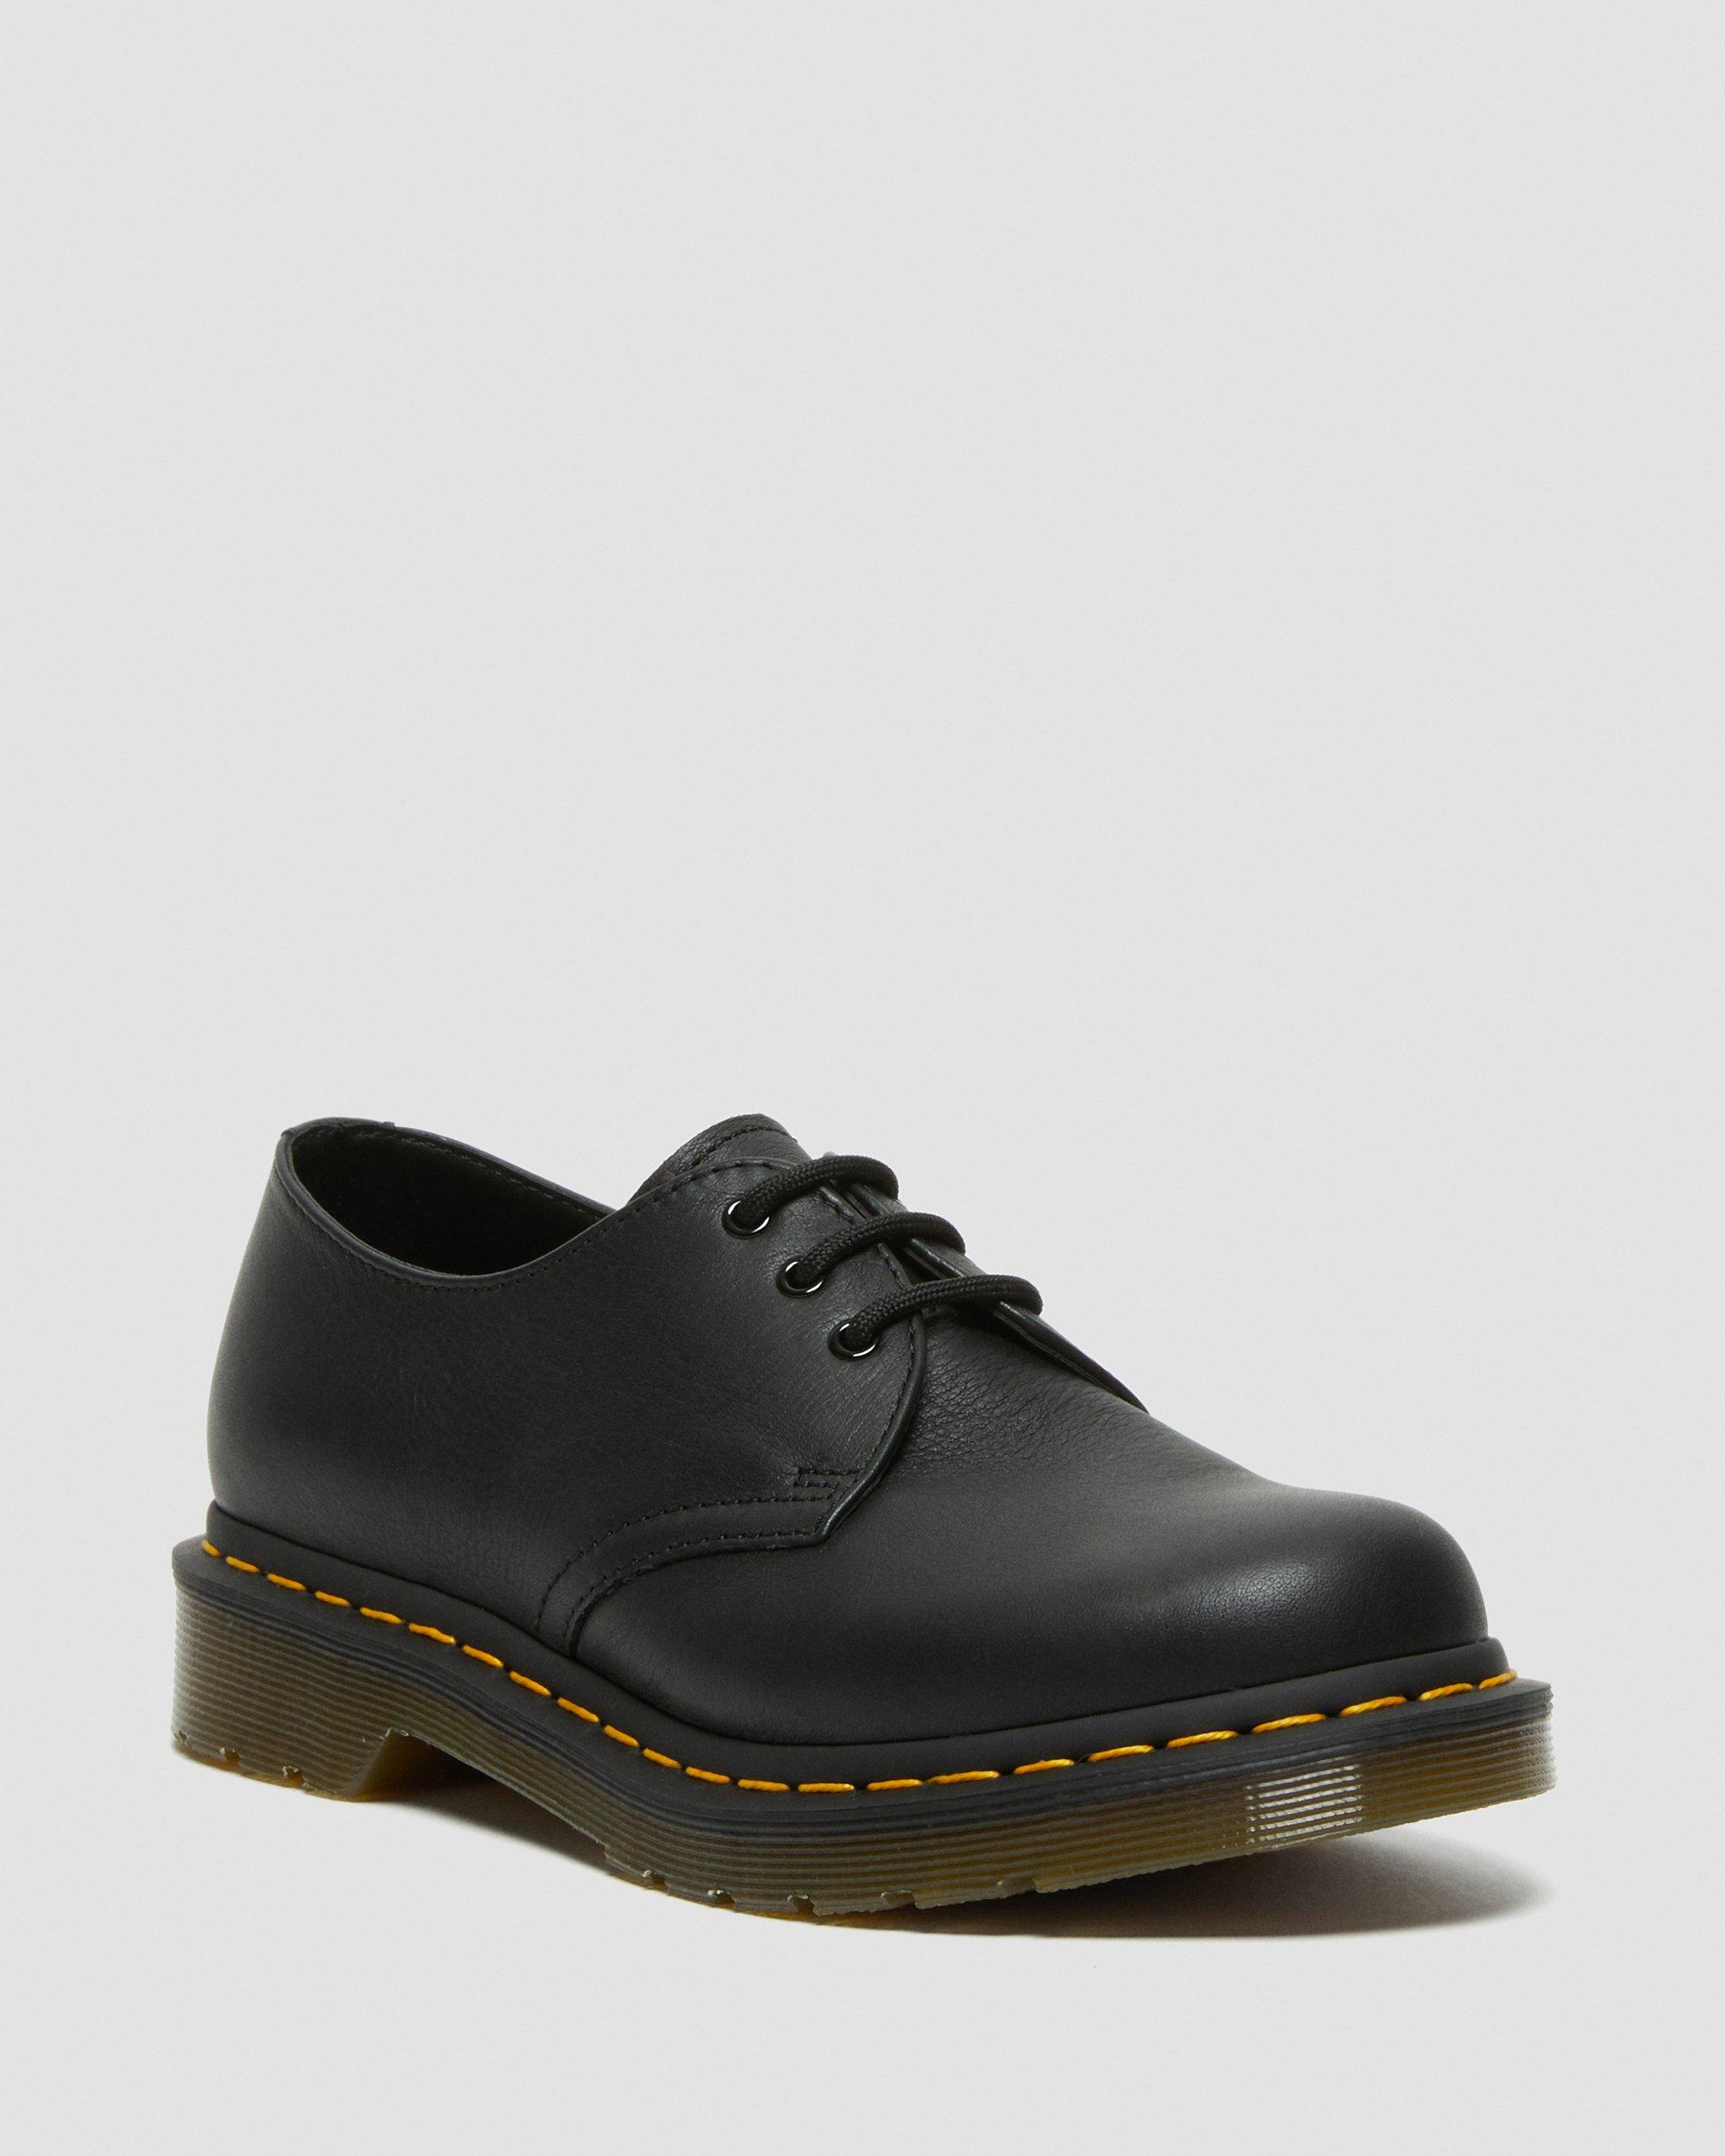 VIRGINIA LEATHER OXFORD SHOES   Dr. Martens